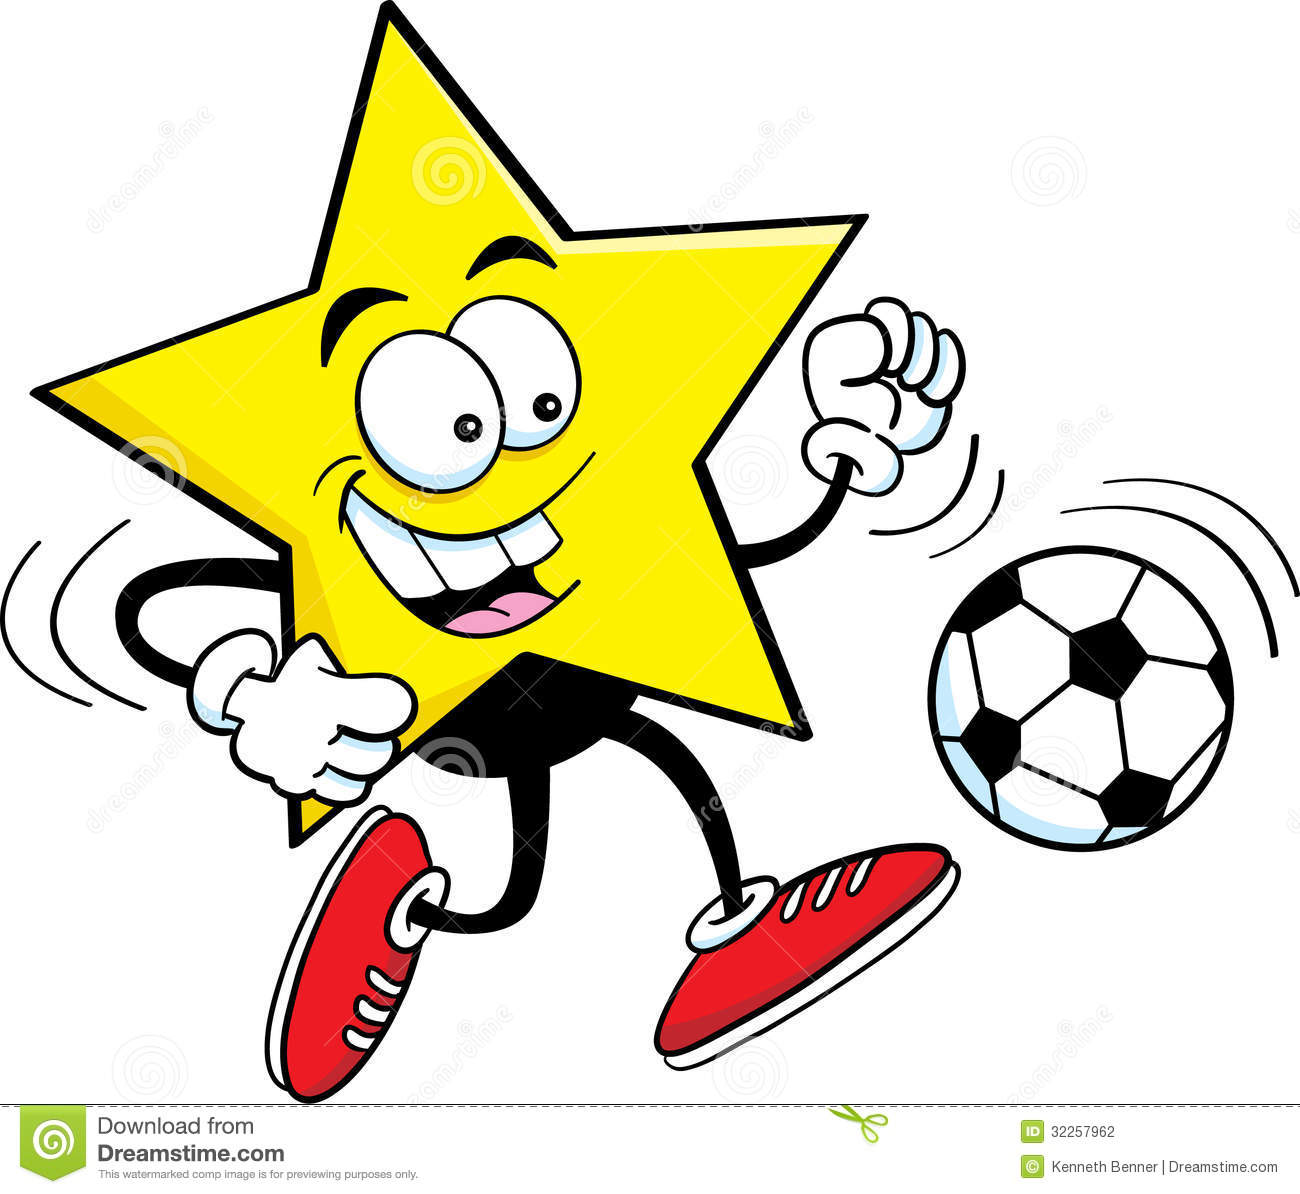 Cartoon Star Playing Soccer Stock Photography - Image: 32257962